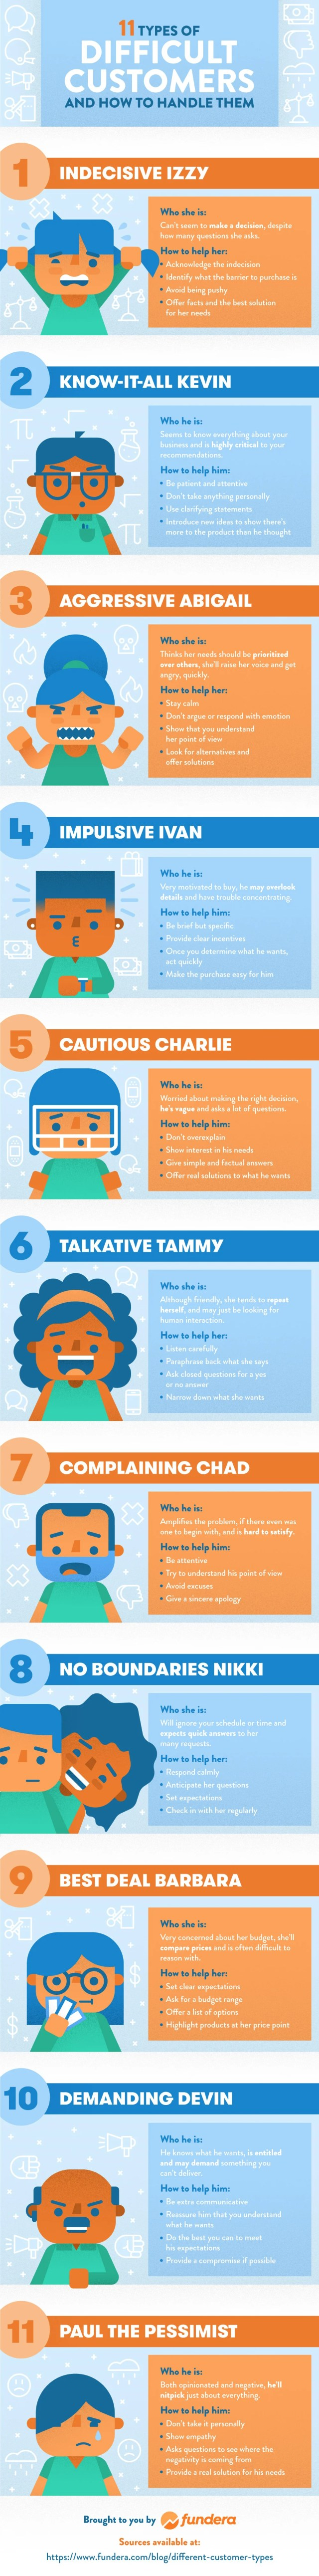 The 11 Types of Difficult Customers, an infographic from the good people of Fundera.